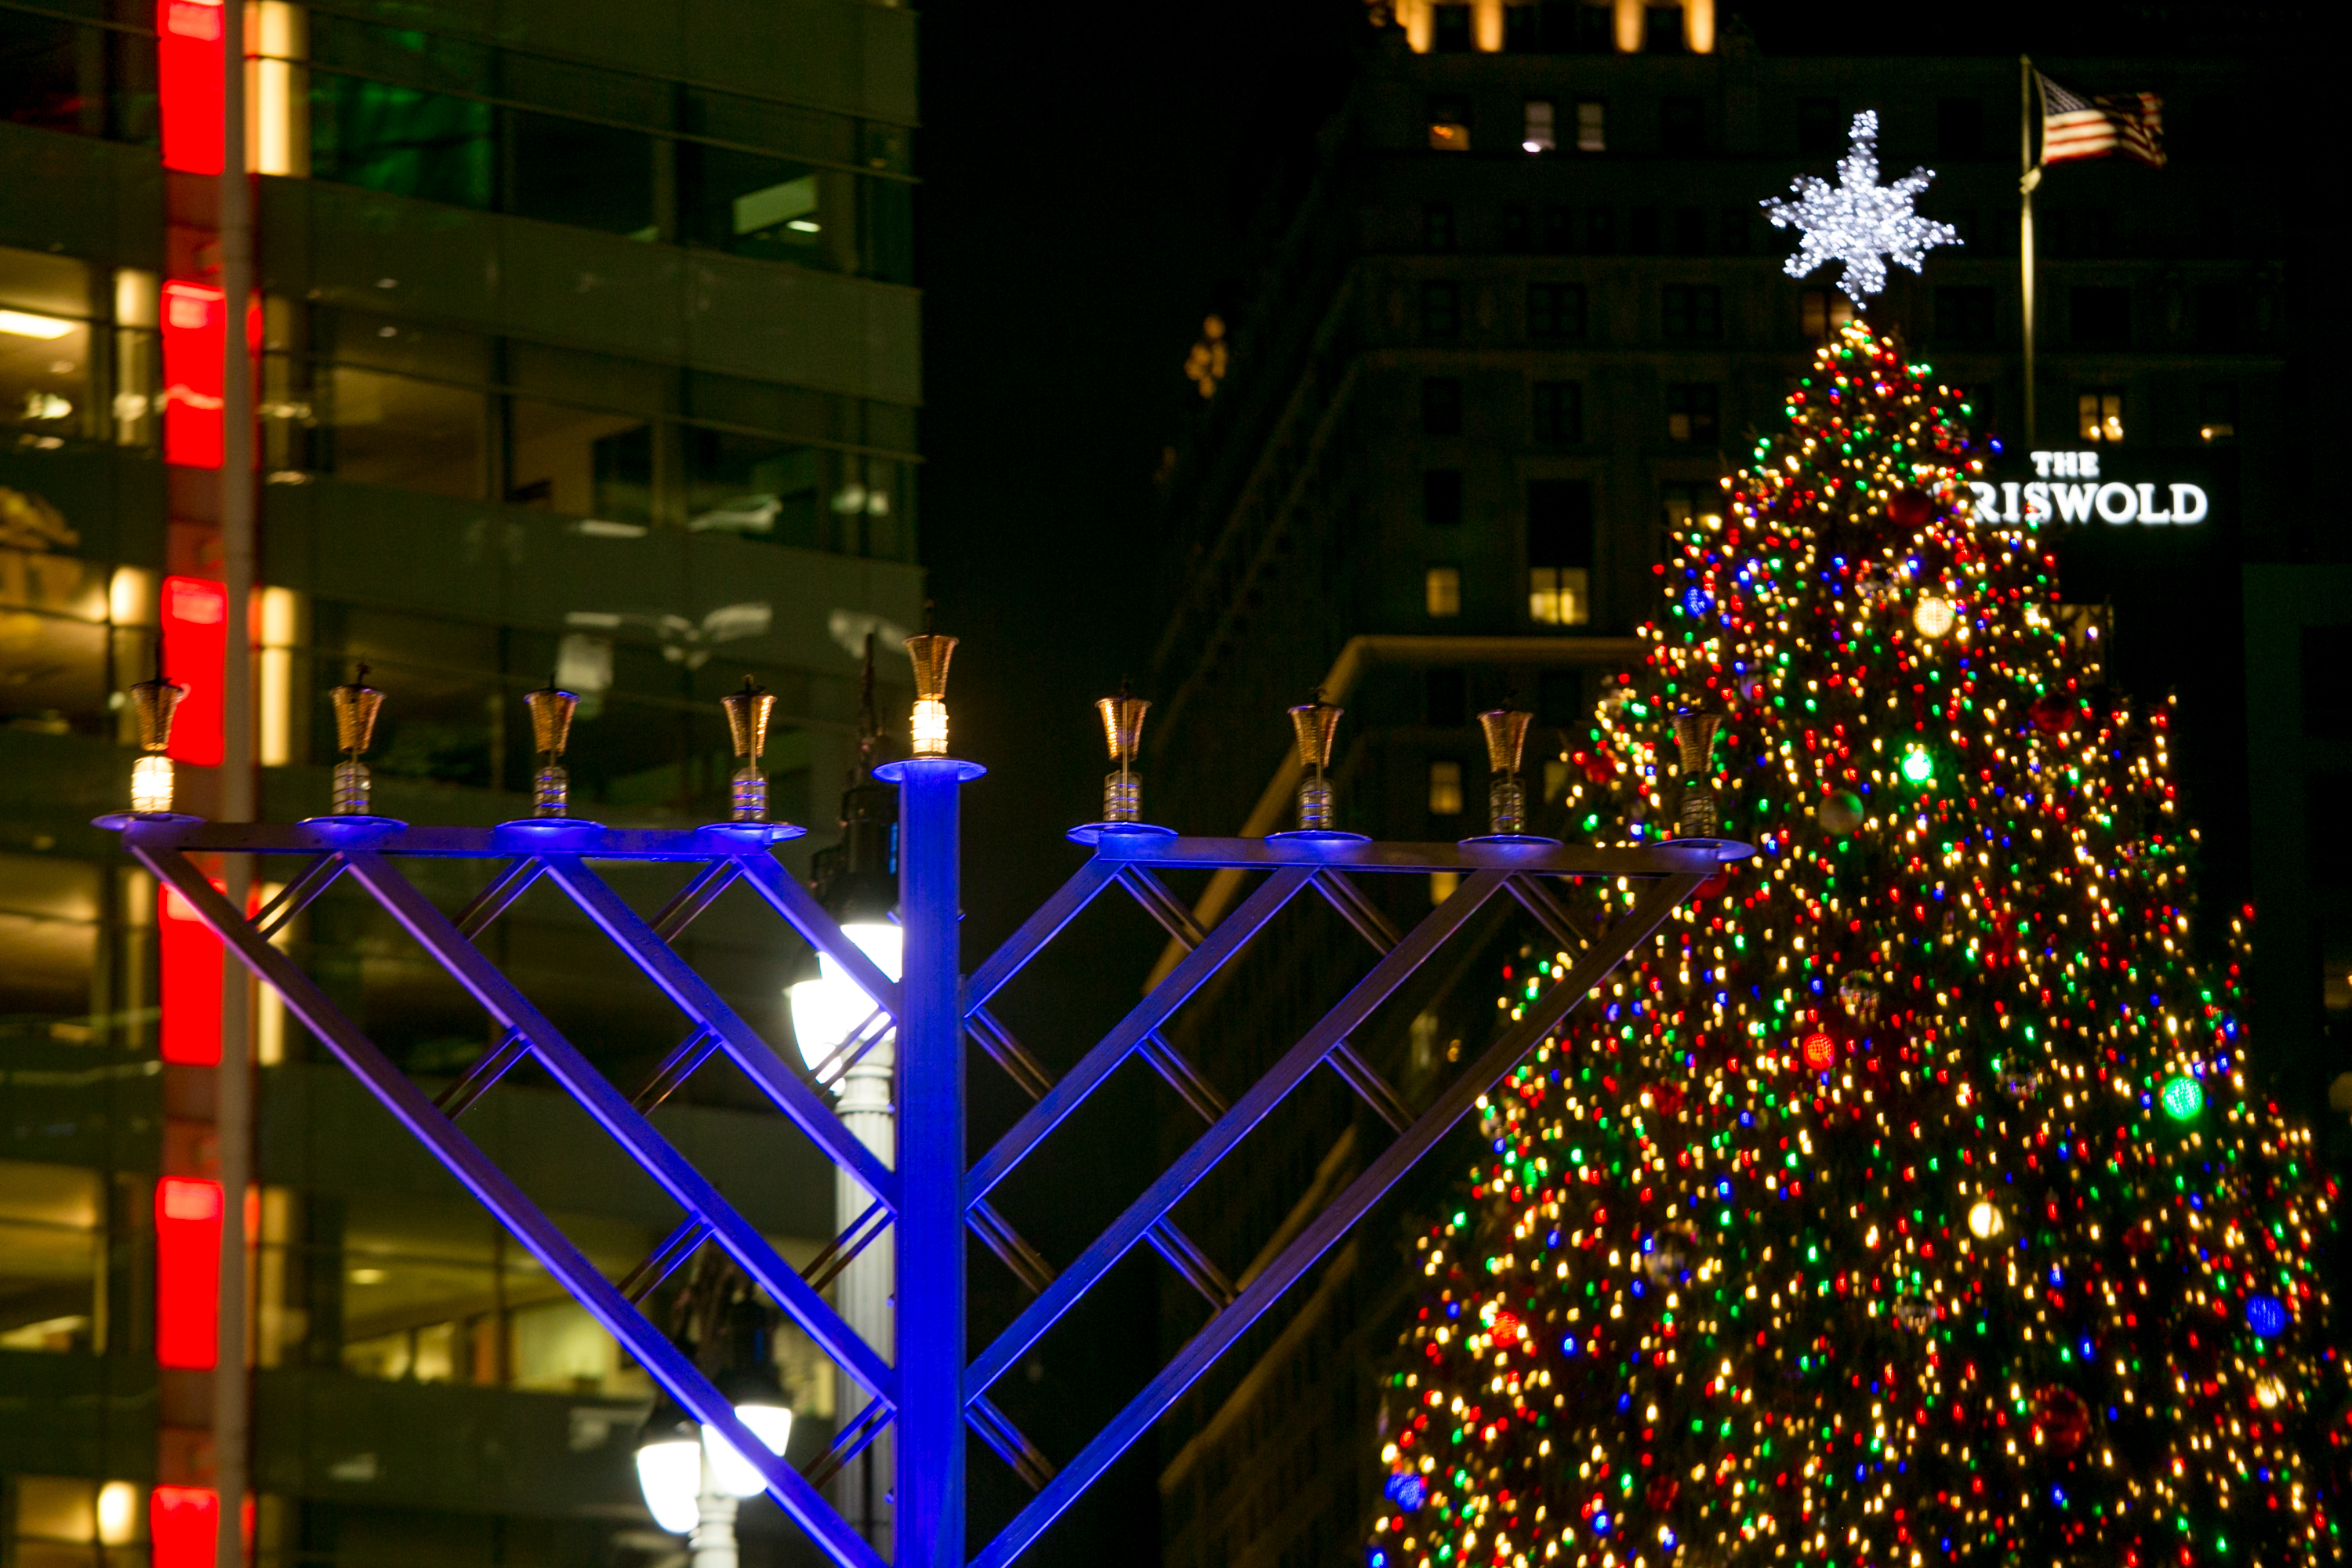 Campus Martius was the scene of Menorah in the D. The light shines on the first night of Chanukah, with the city's Christmas tree in the background.